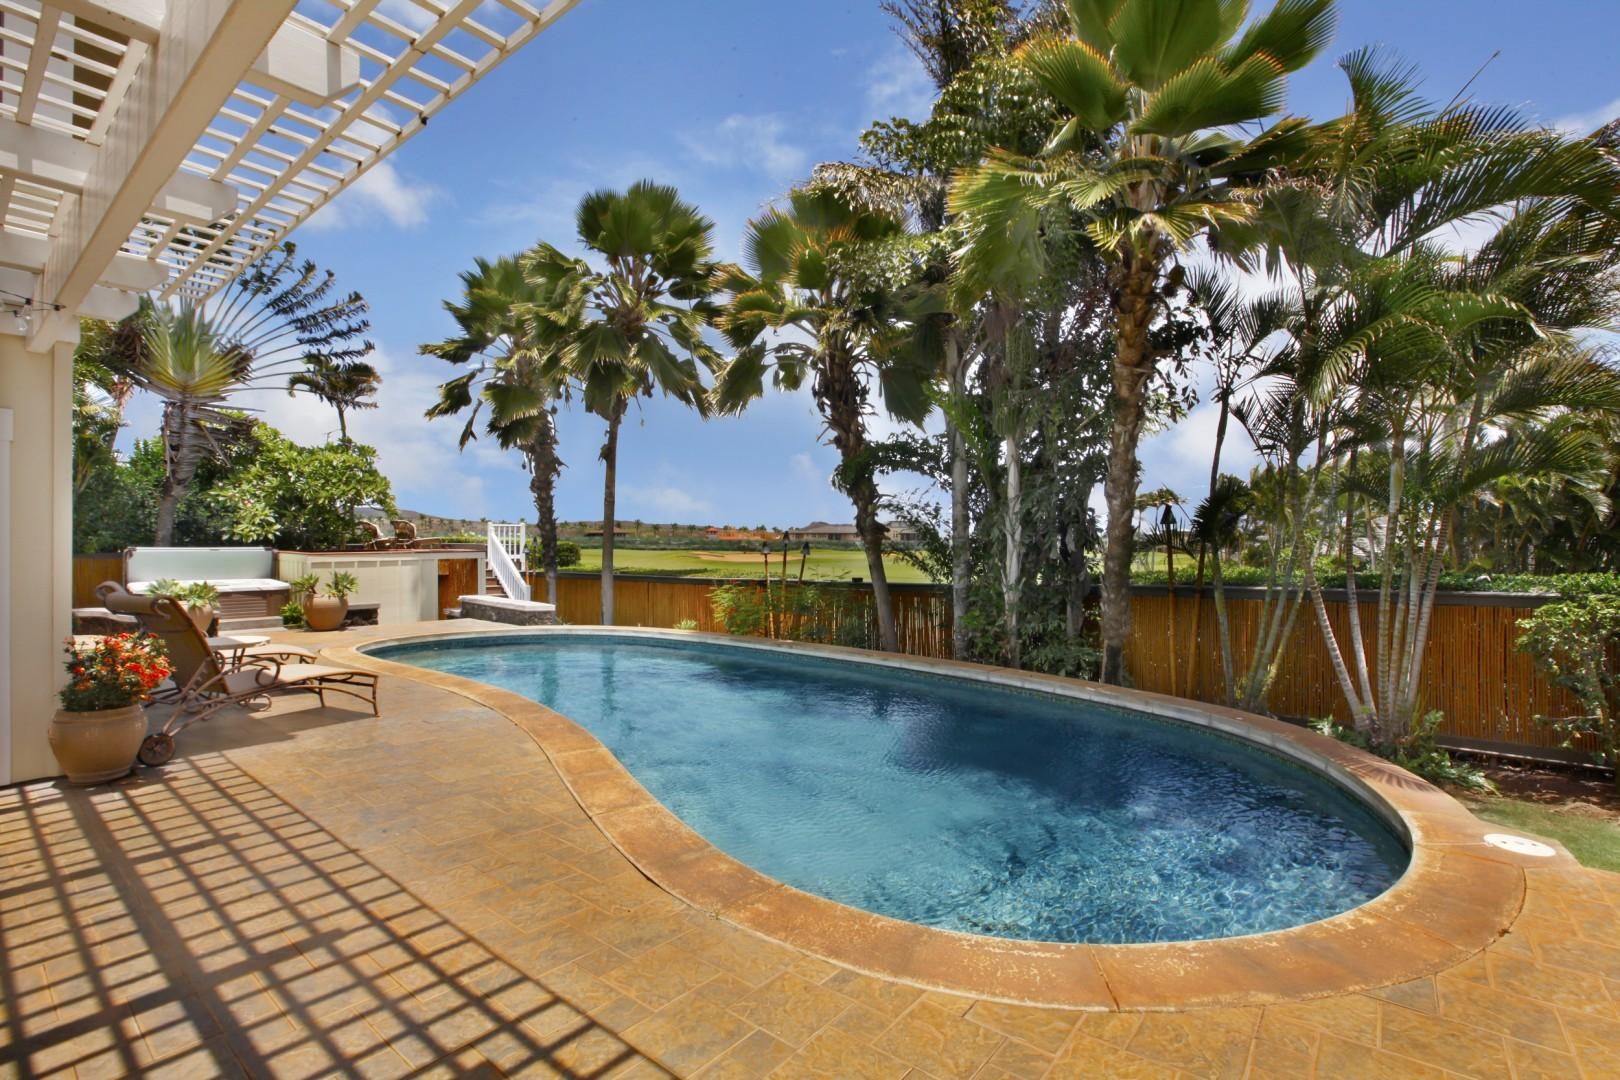 backyard with pool and golf course view